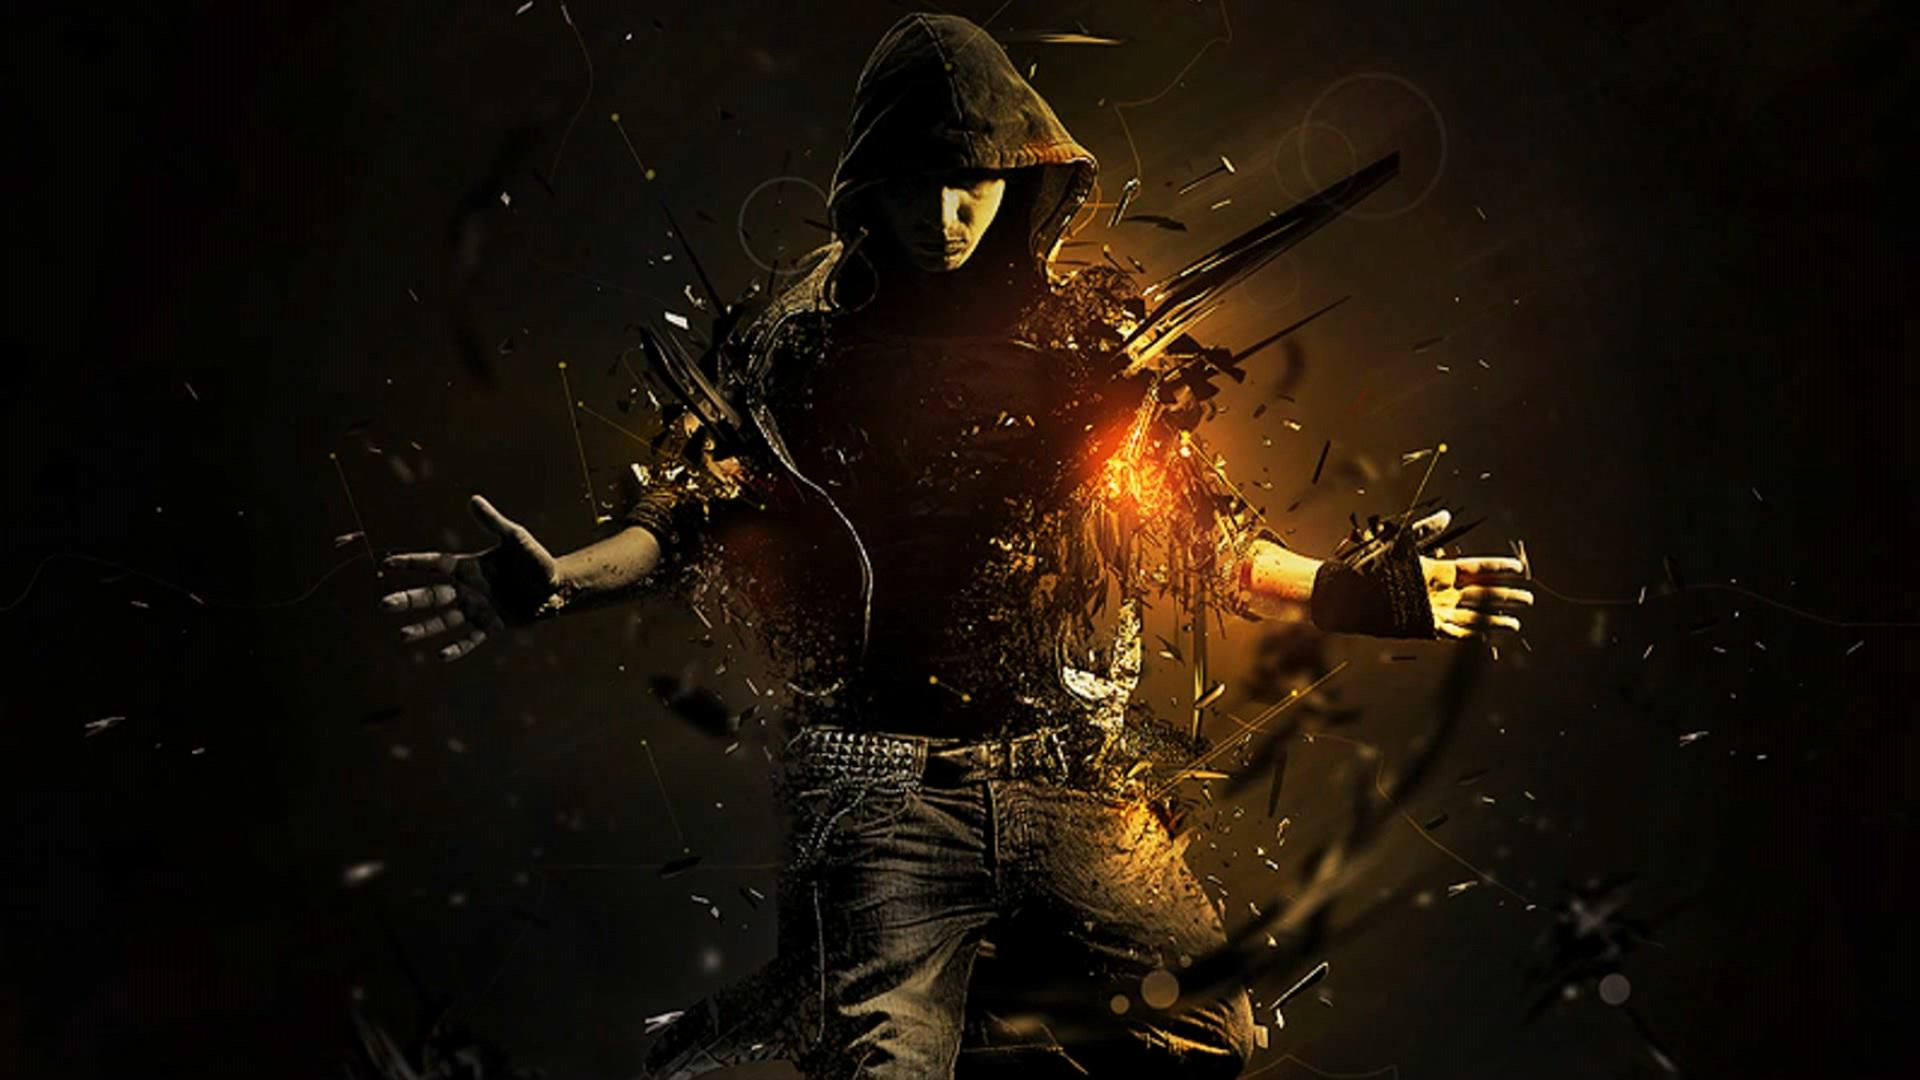 Awesome Wallpapers For Boys